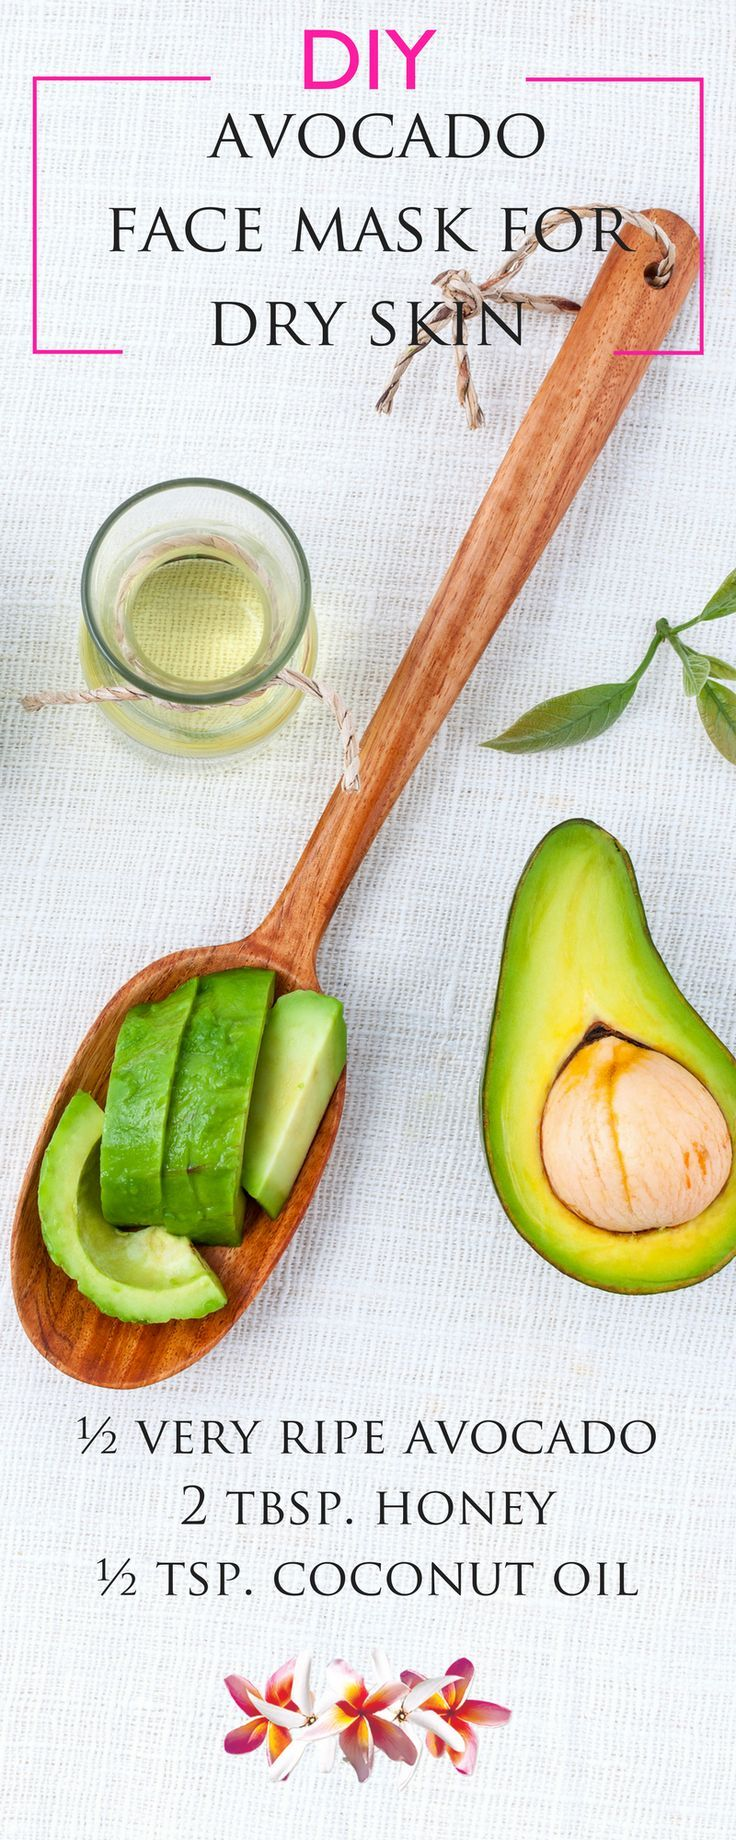 Directions: Mash or puree the avocado until it's smooth and creamy, then blend in the rest of the ingredients. Apply to your face, avoiding your eyes, and leave on for 10-15 minutes.Wipe your face clean with a damp cloth and rinse your face with warm water. Click here for more DIY Beauty Recipes http://www.purefiji.com/blog/diy-home-spa/